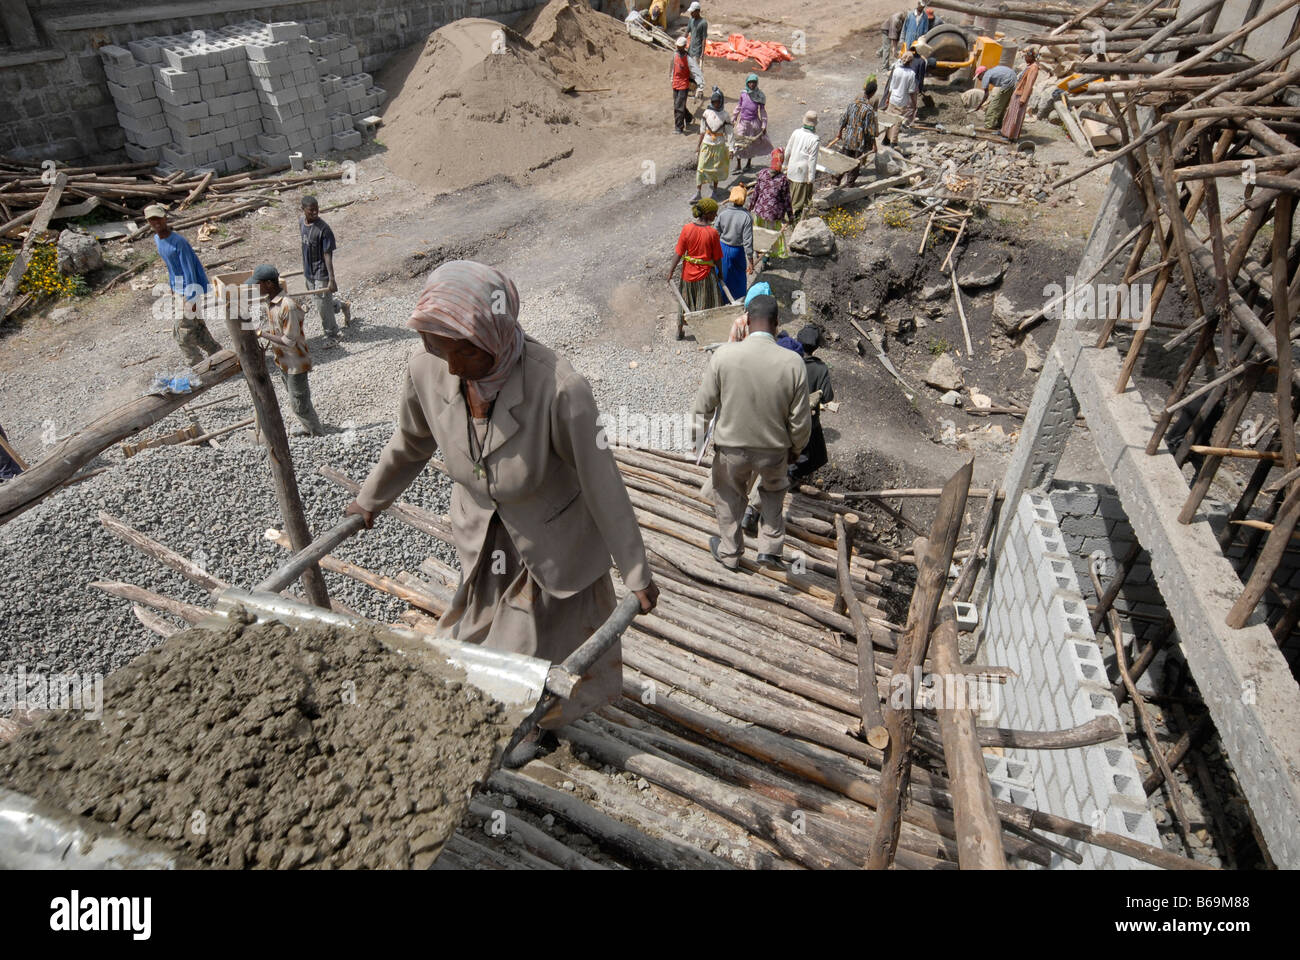 Women labourers on a building site in Addis Ababa, Ethiopia, Africa Stock Photo